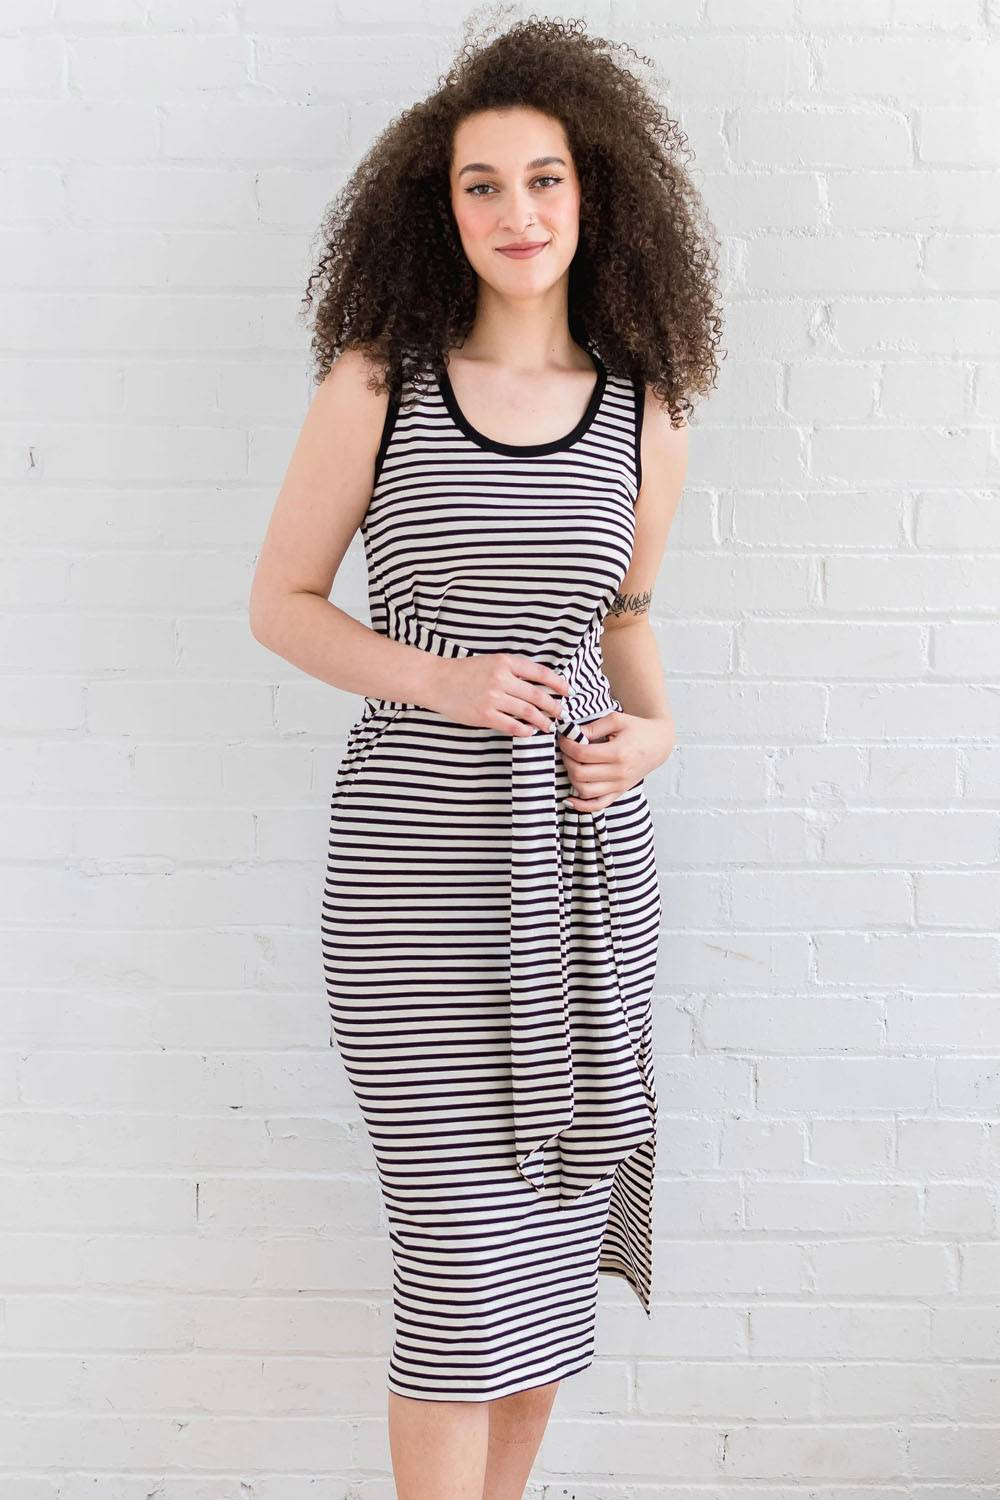 franc made in canada dress